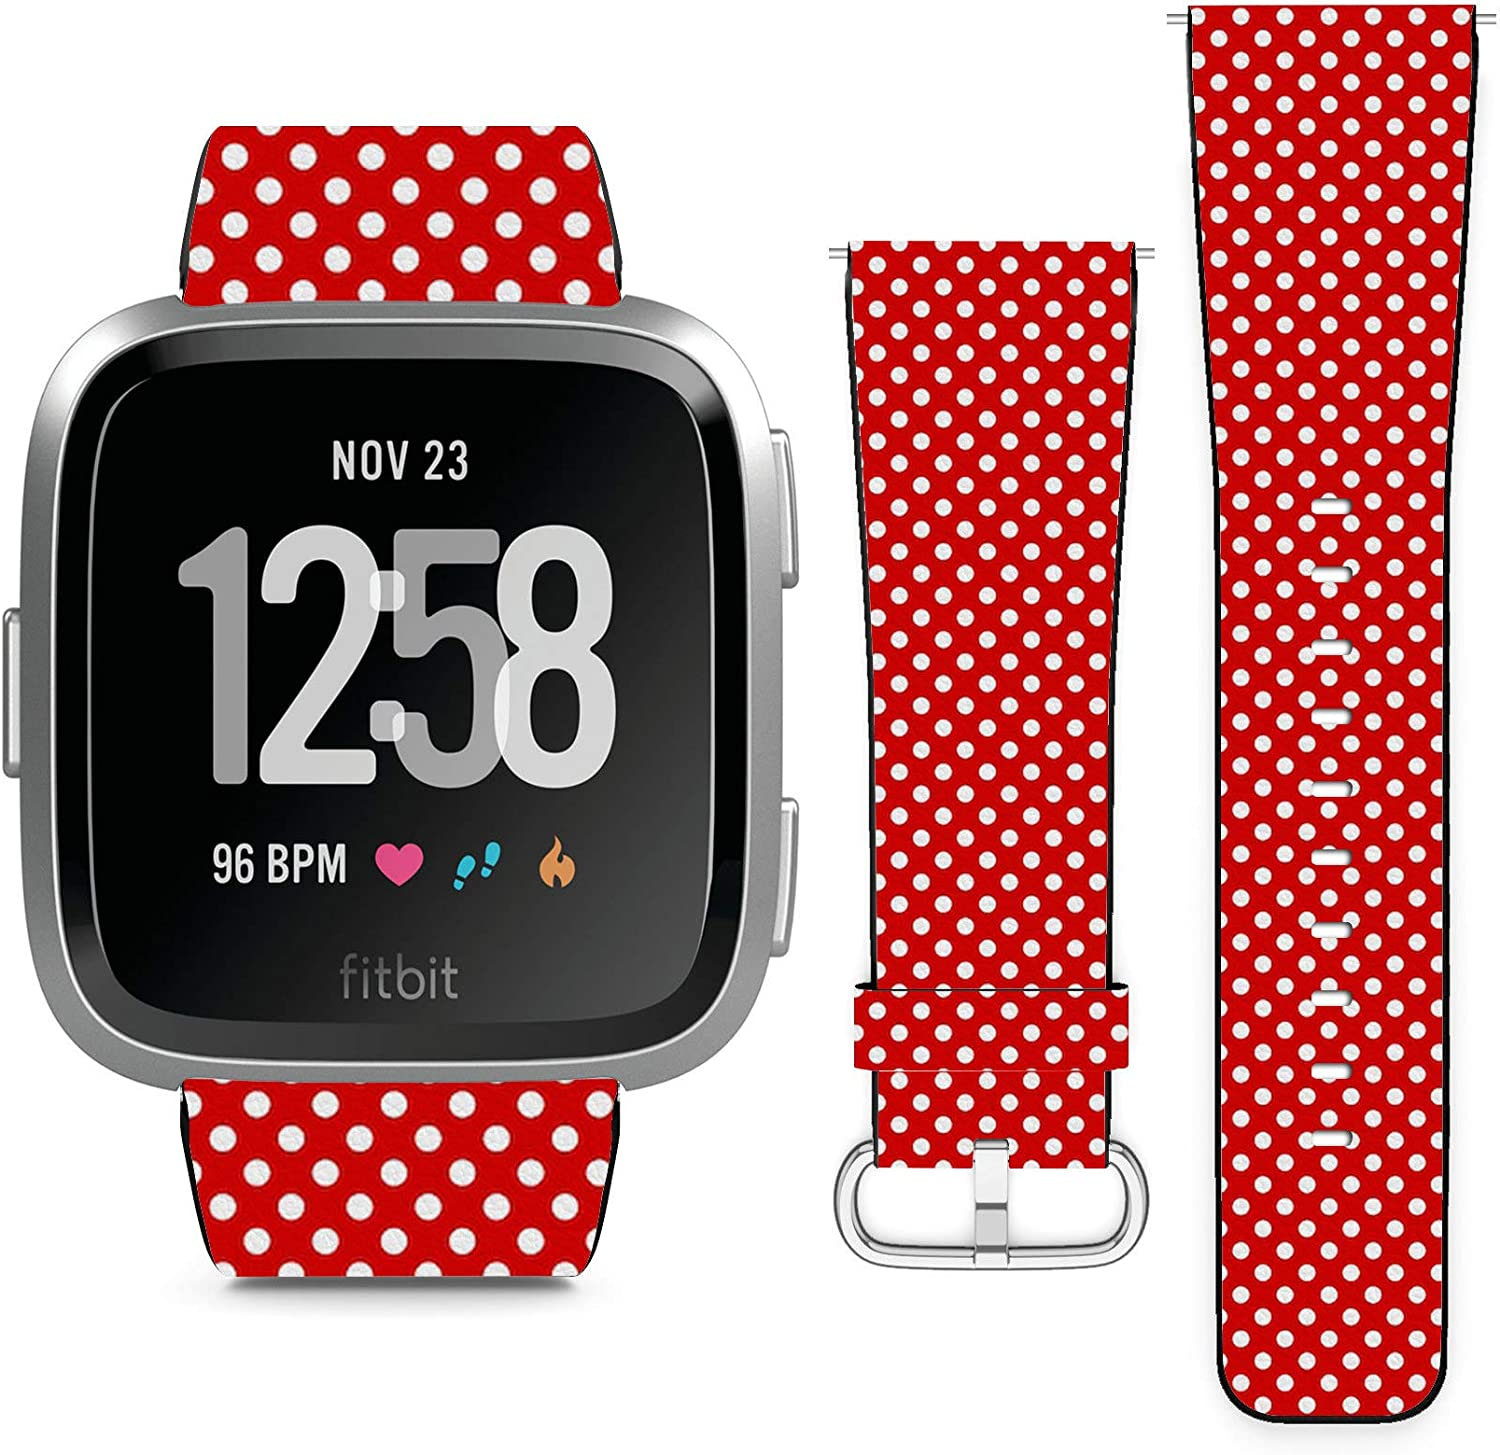 Compatible with Fitbit Versa, Versa 2, Versa Lite, Leather Replacement Bracelet Strap Wristband with Quick Release Pins // Polka Dot